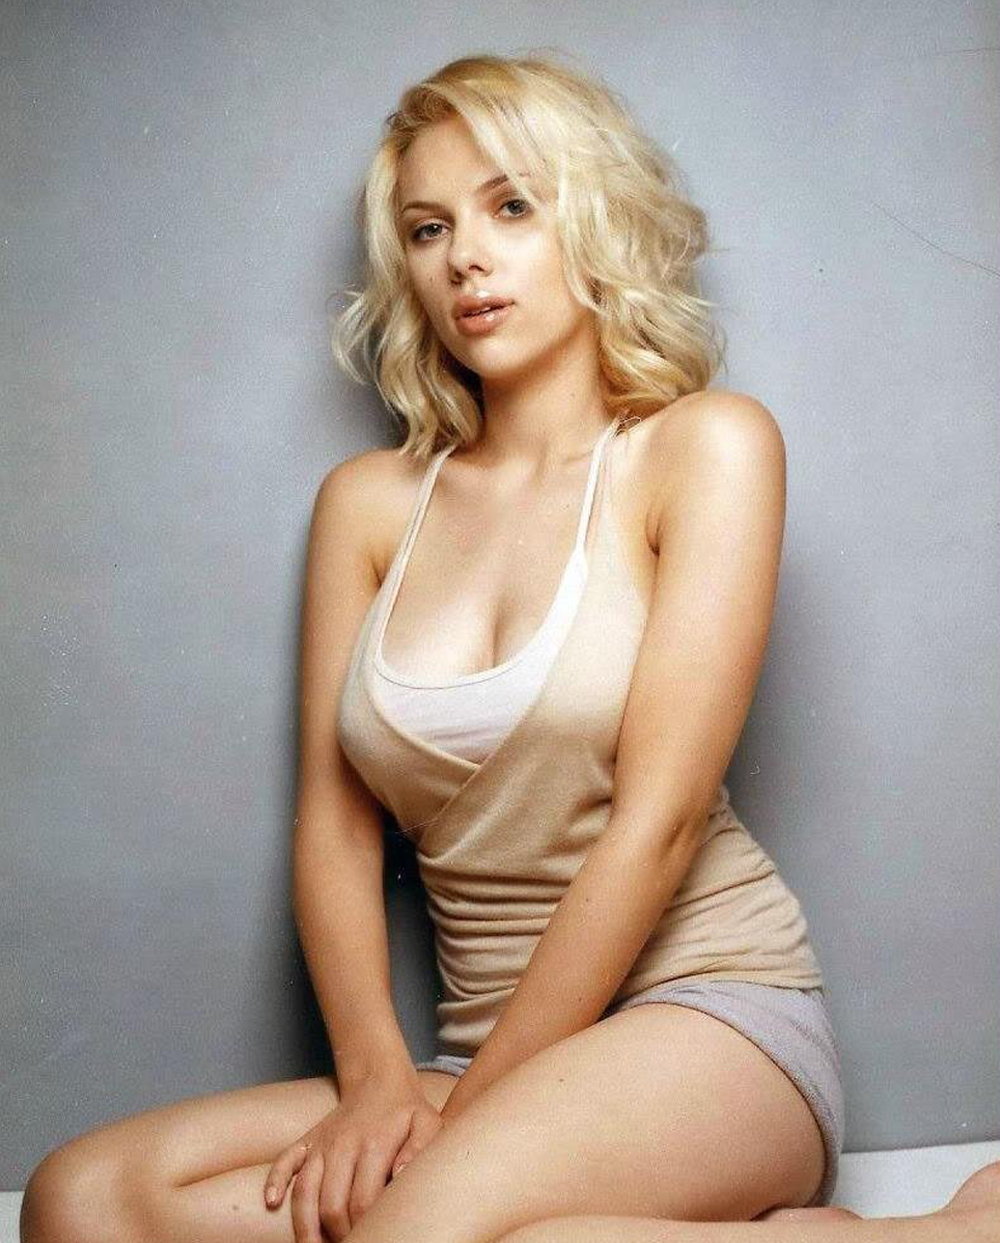 scarlett johansson model - photo #4